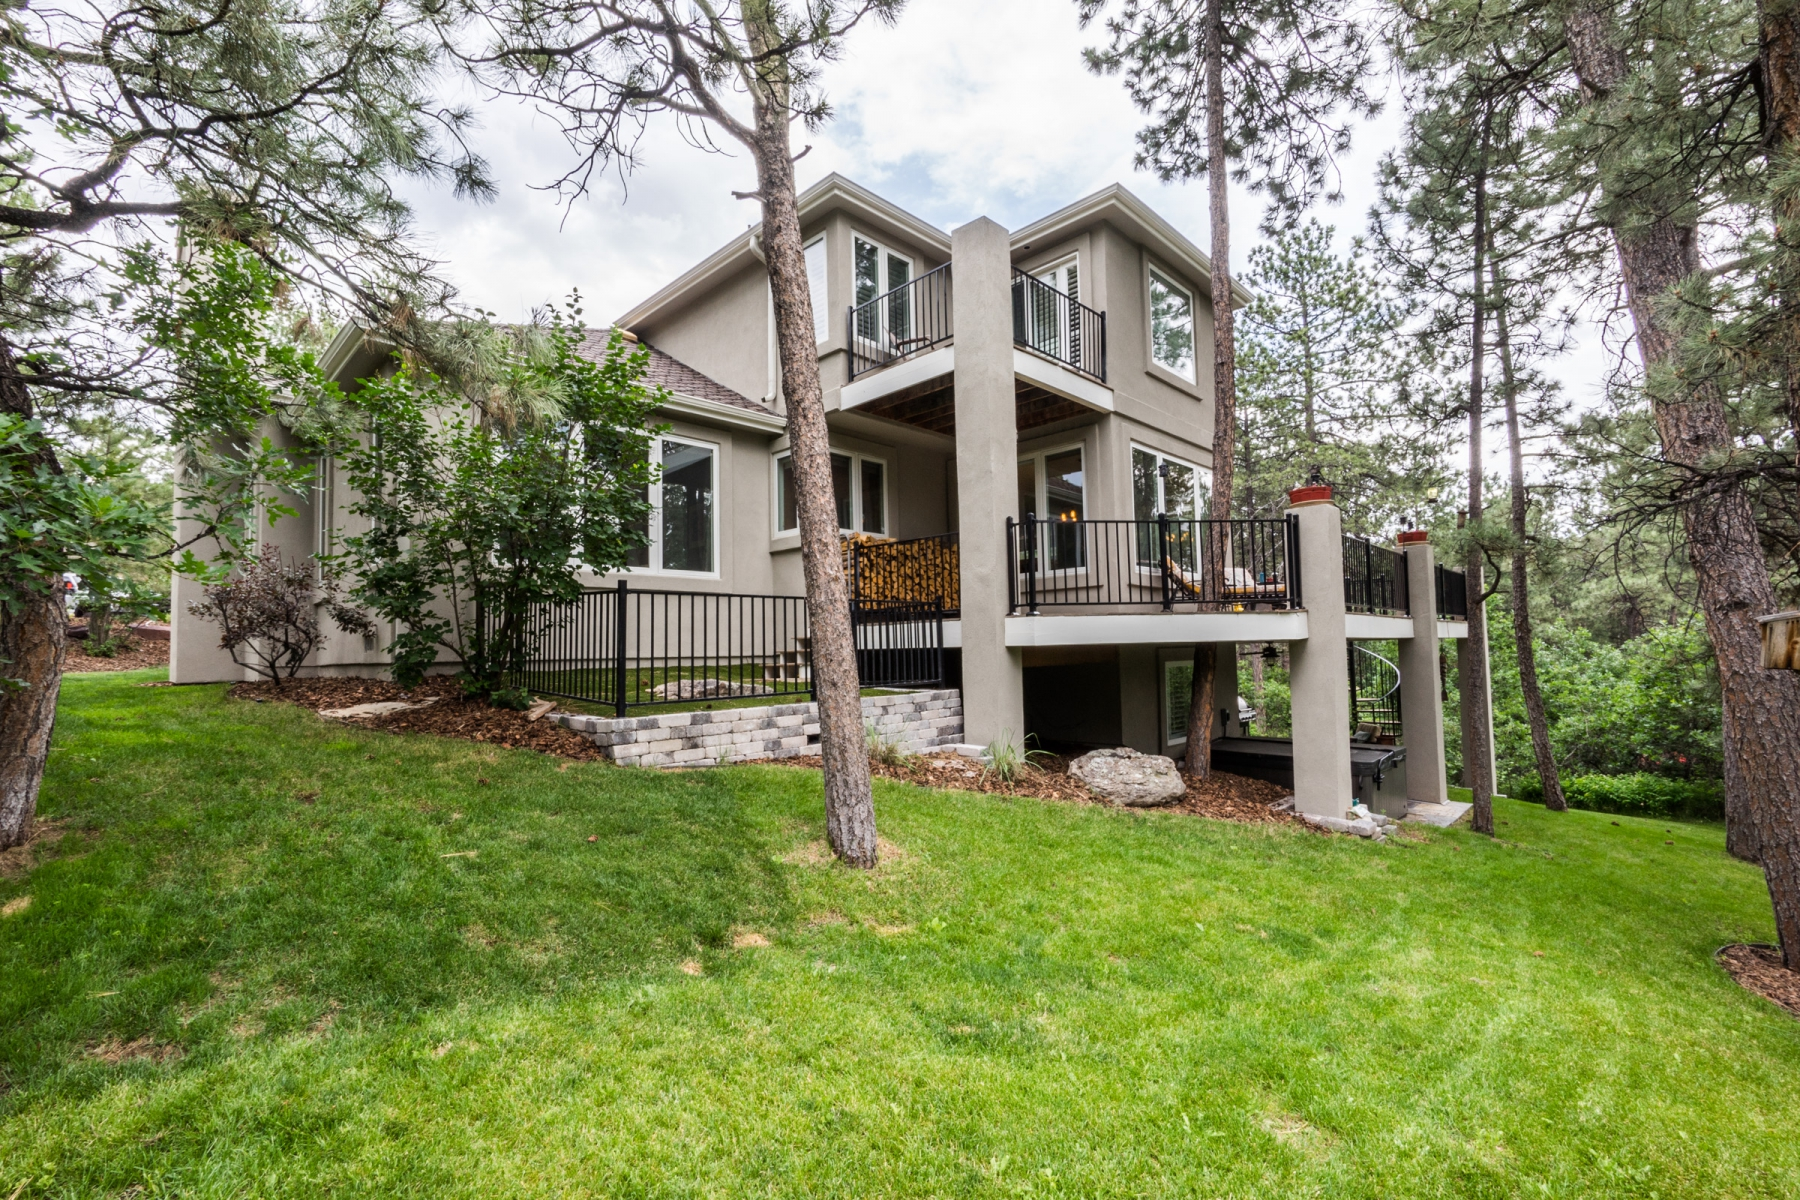 Single Family Home for Sale at 479 Silbrico Way Castle Pines Village, Castle Rock, Colorado 80108 United States